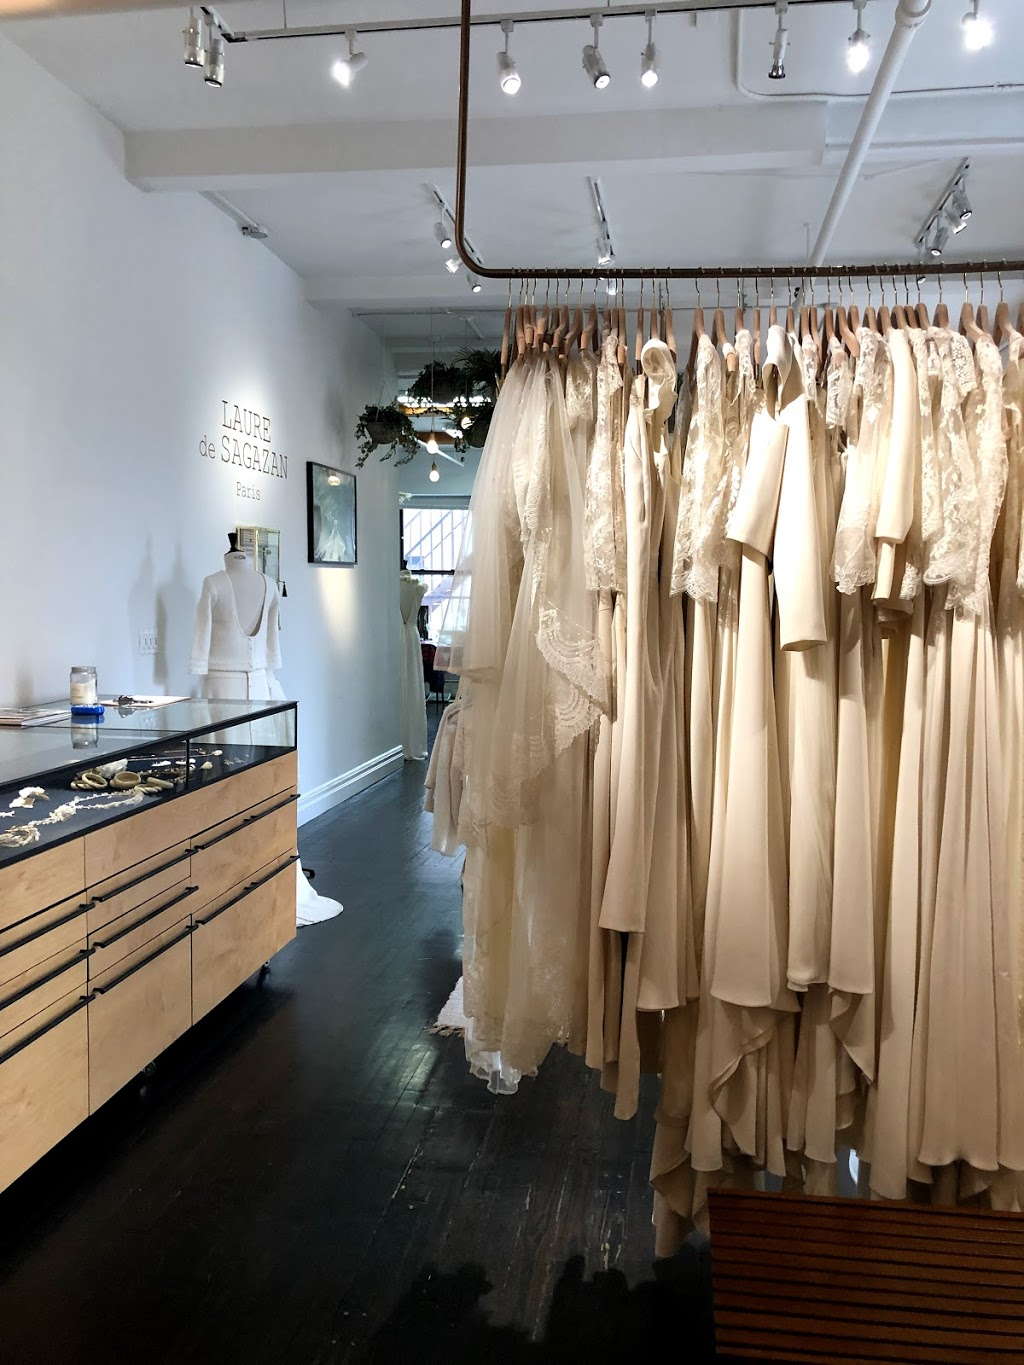 Laure de Sagazan New York | clothing store | 155 Wooster St #4R, New York, NY 10012, USA | 6464846593 OR +1 646-484-6593